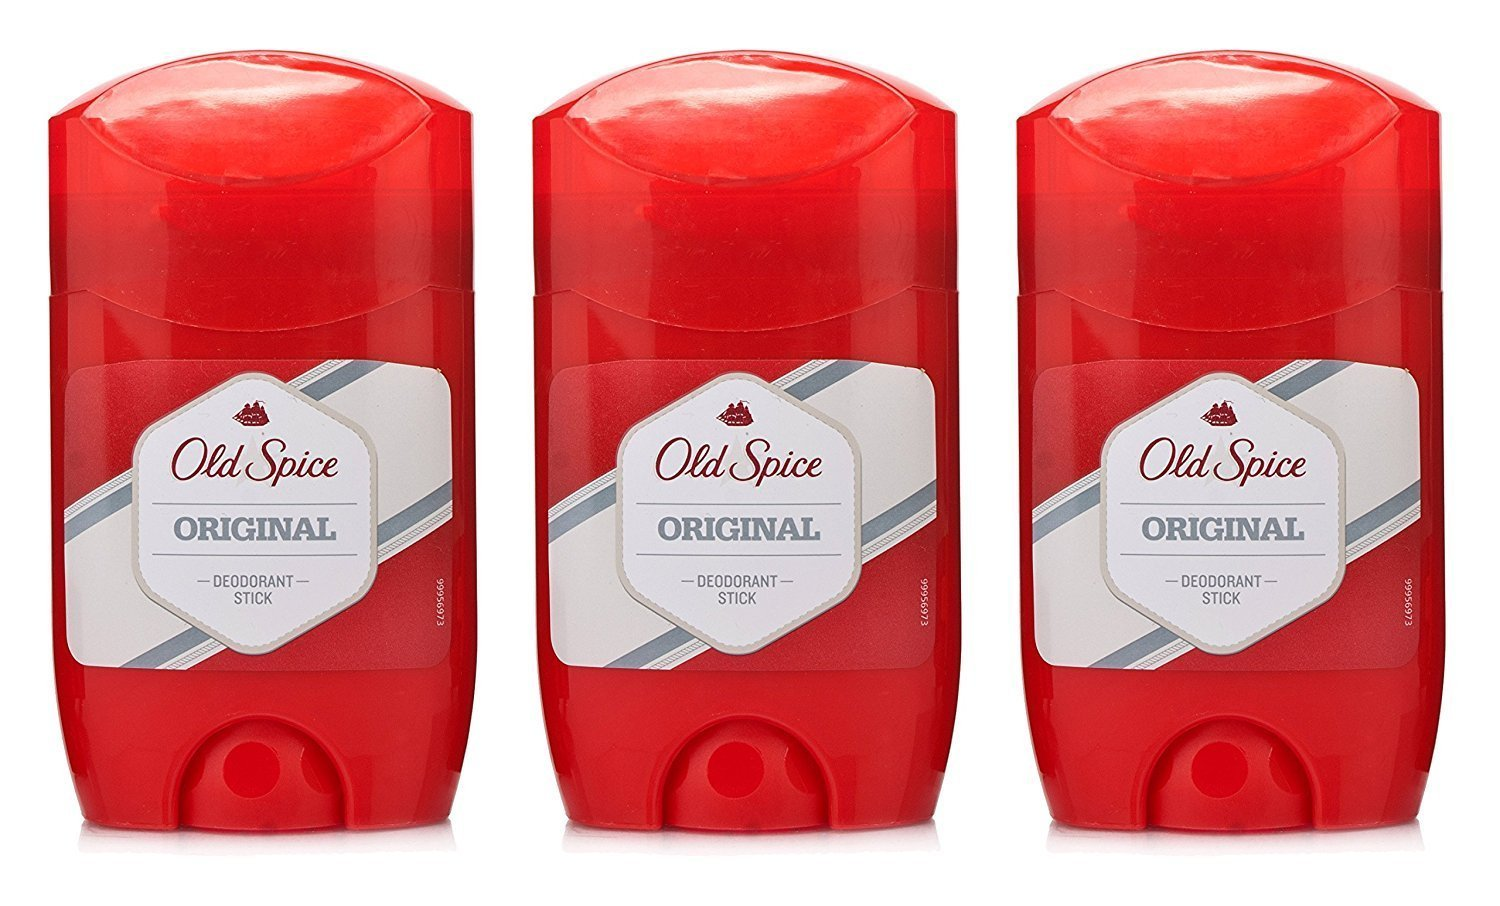 THREE PACKS of Old Spice Original Deodorant/Stick